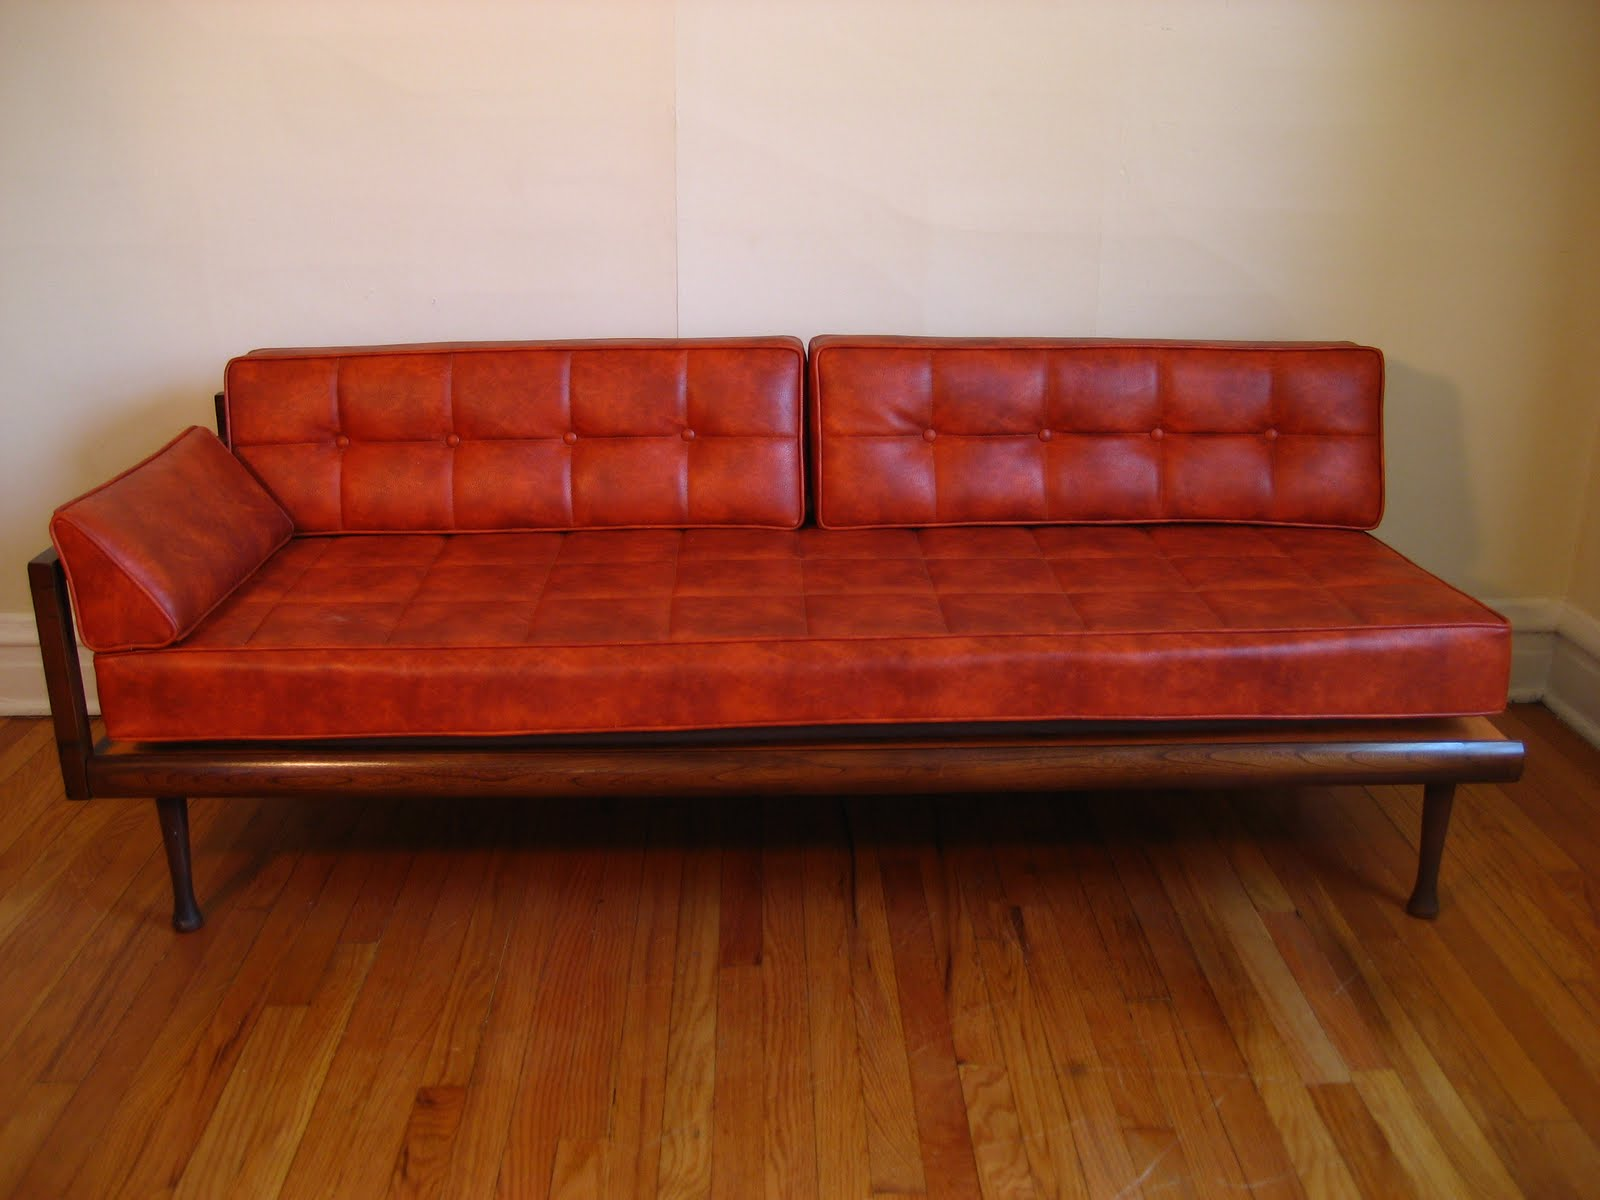 Daybed Sofas Sofa Cover Malaysia Flatout Design Mid Century